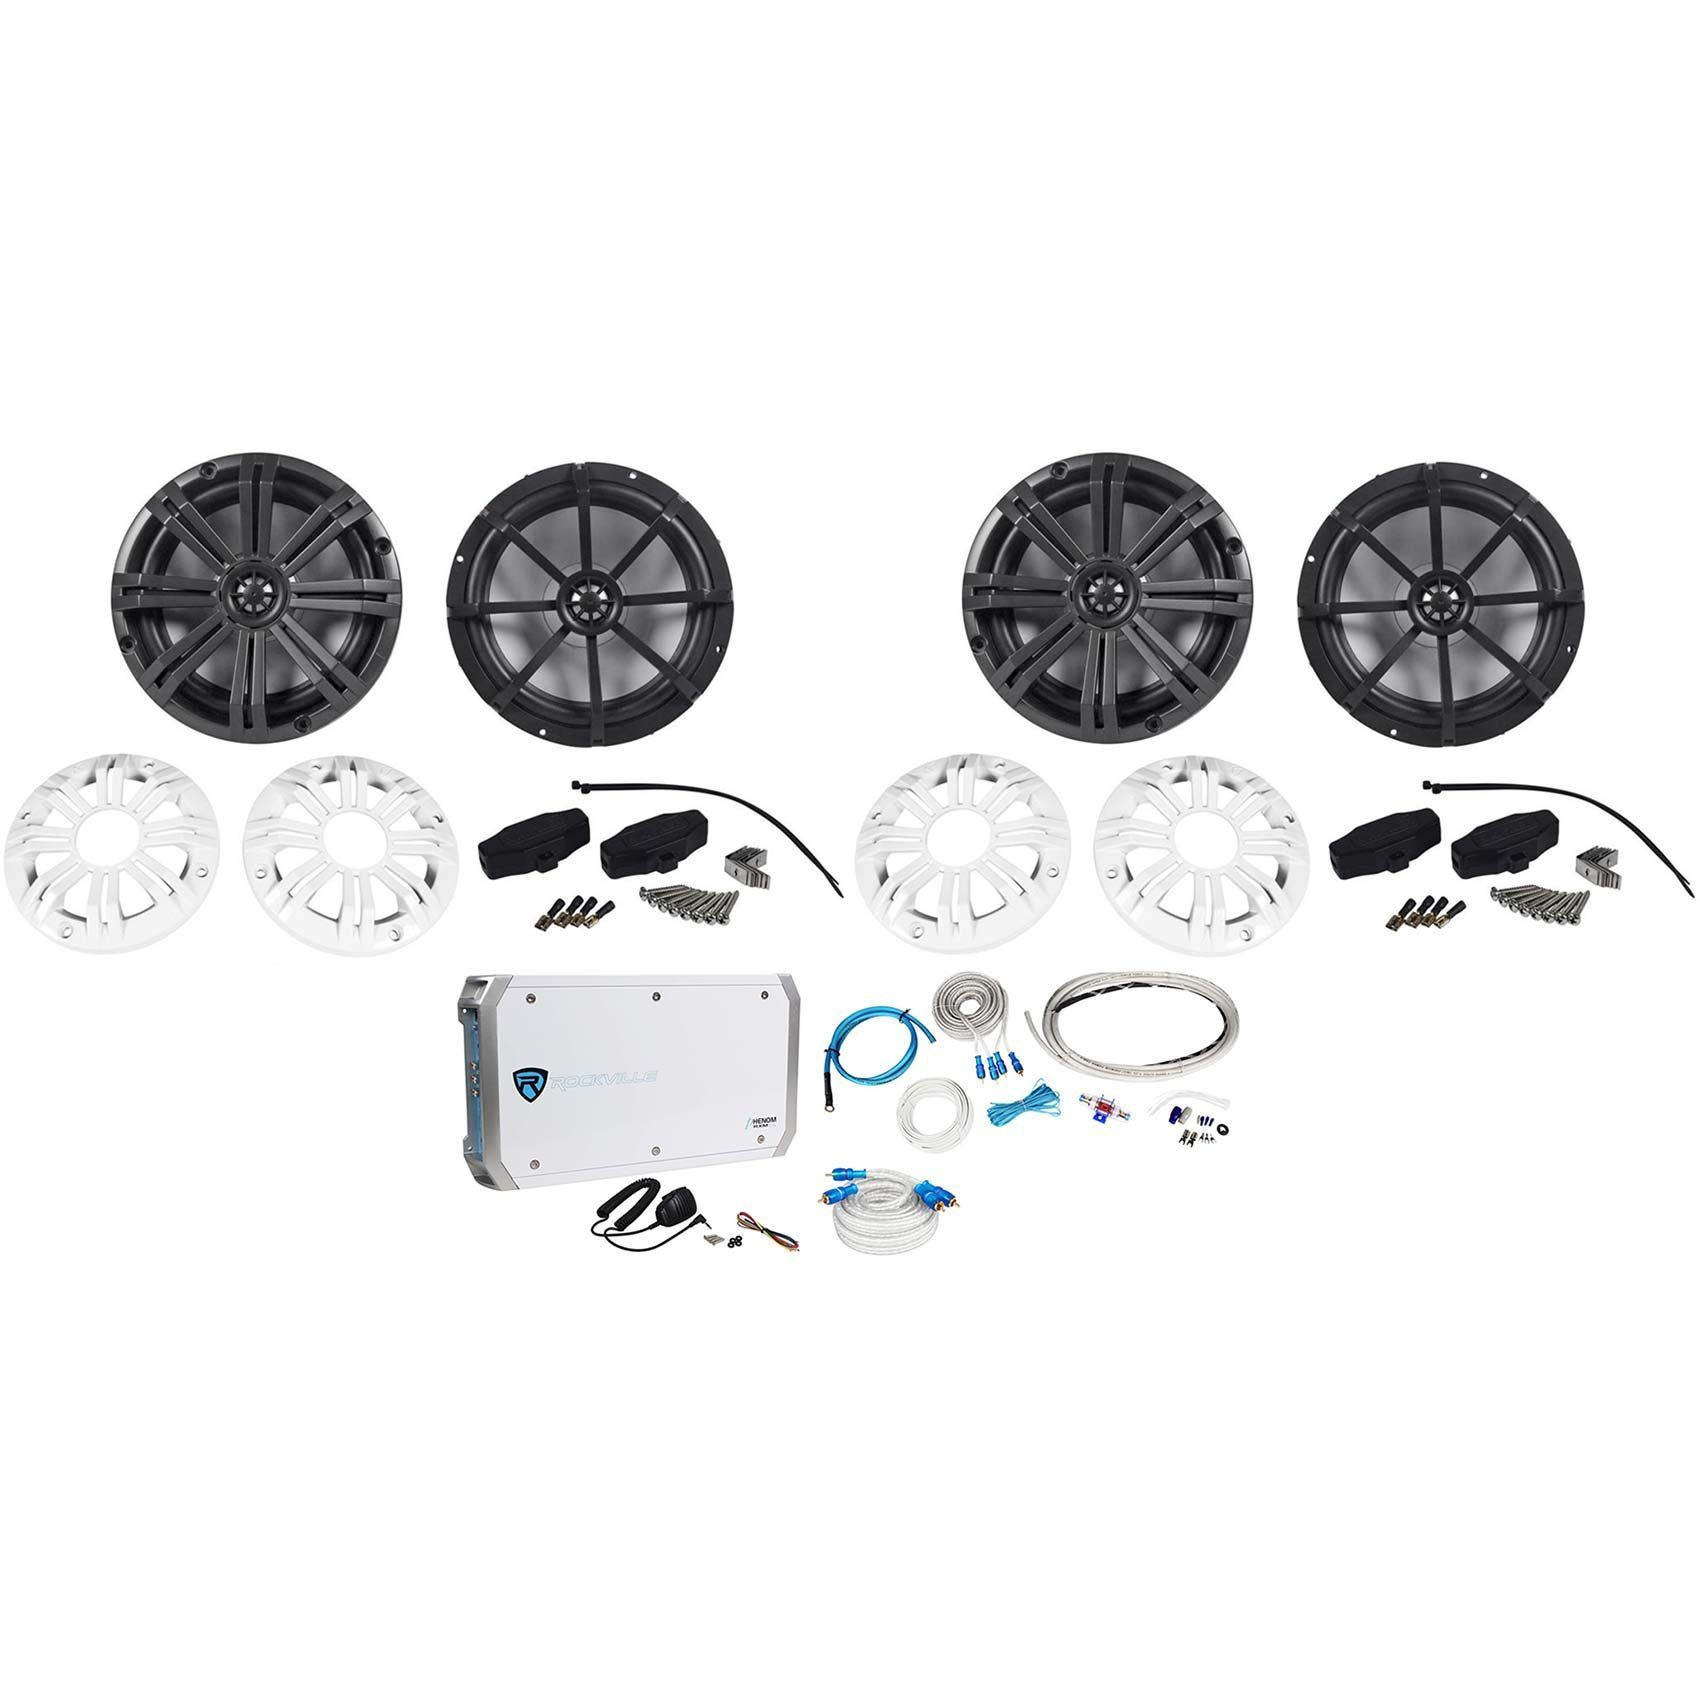 2 pairs kicker led 1200w 8 marineboat speakers4 channel 2 pairs kicker led 1200w 8 marineboat speakers4 channel sciox Image collections